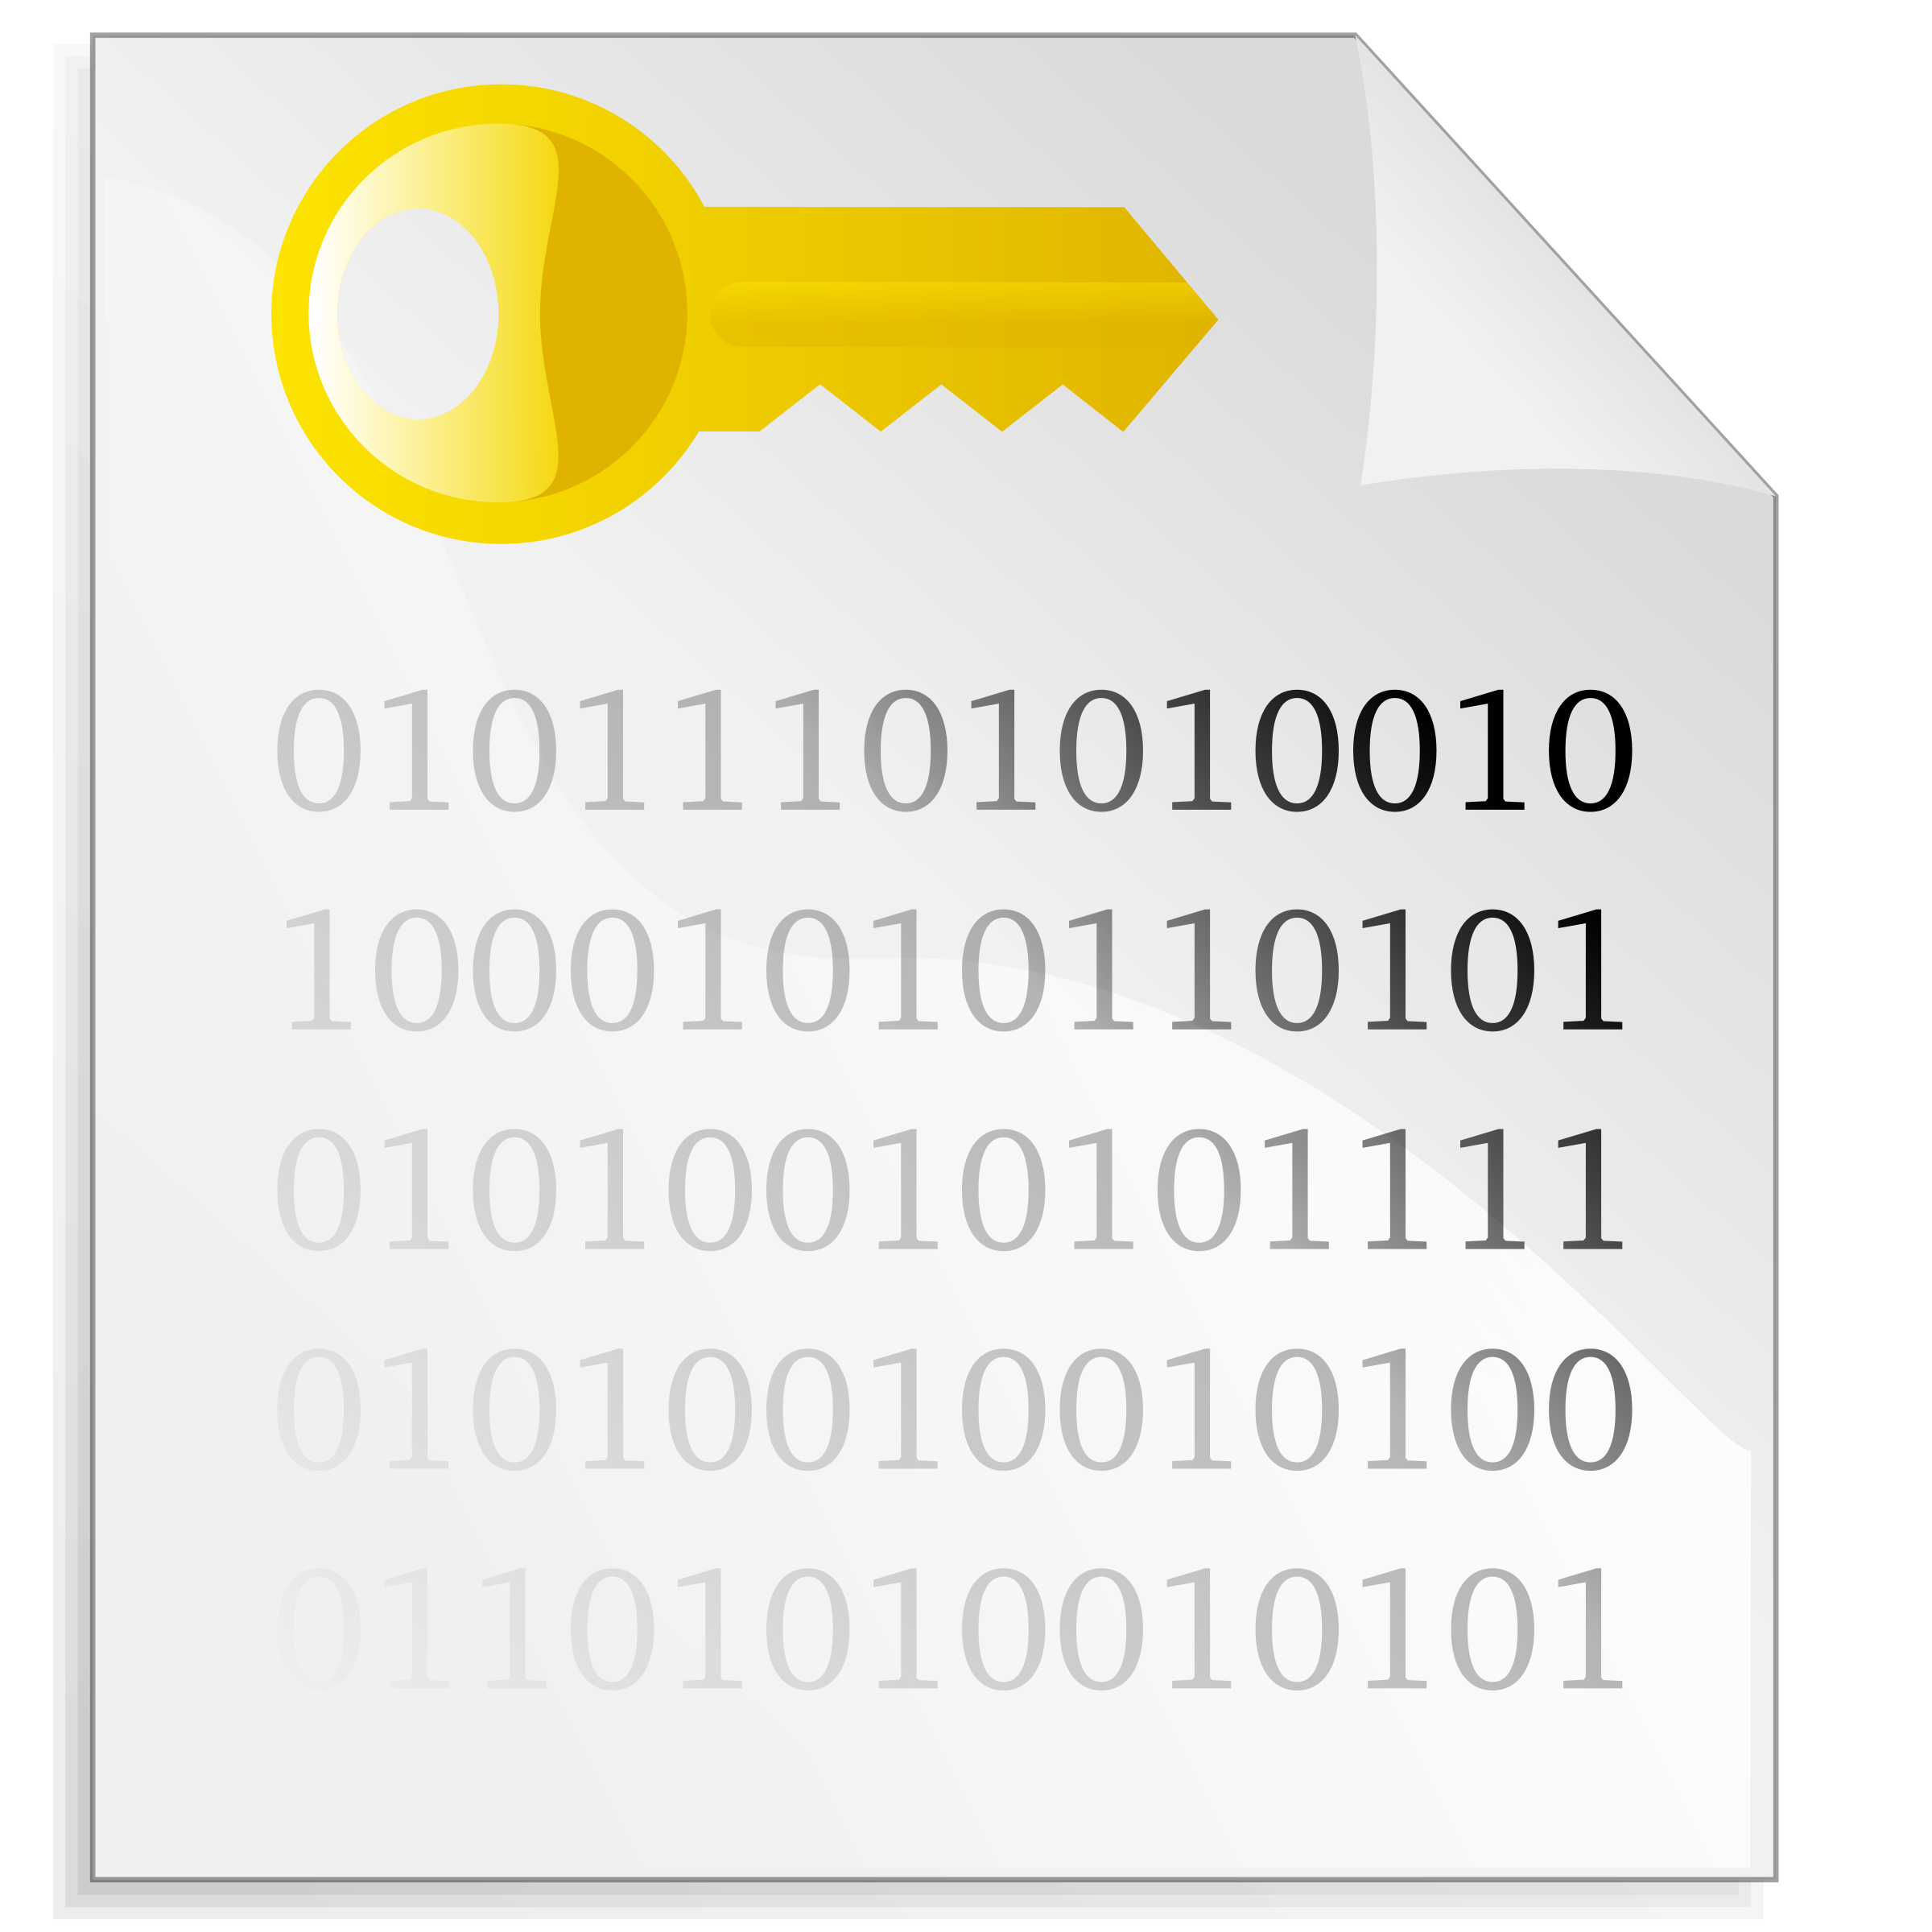 Encrypted file icon by spylt